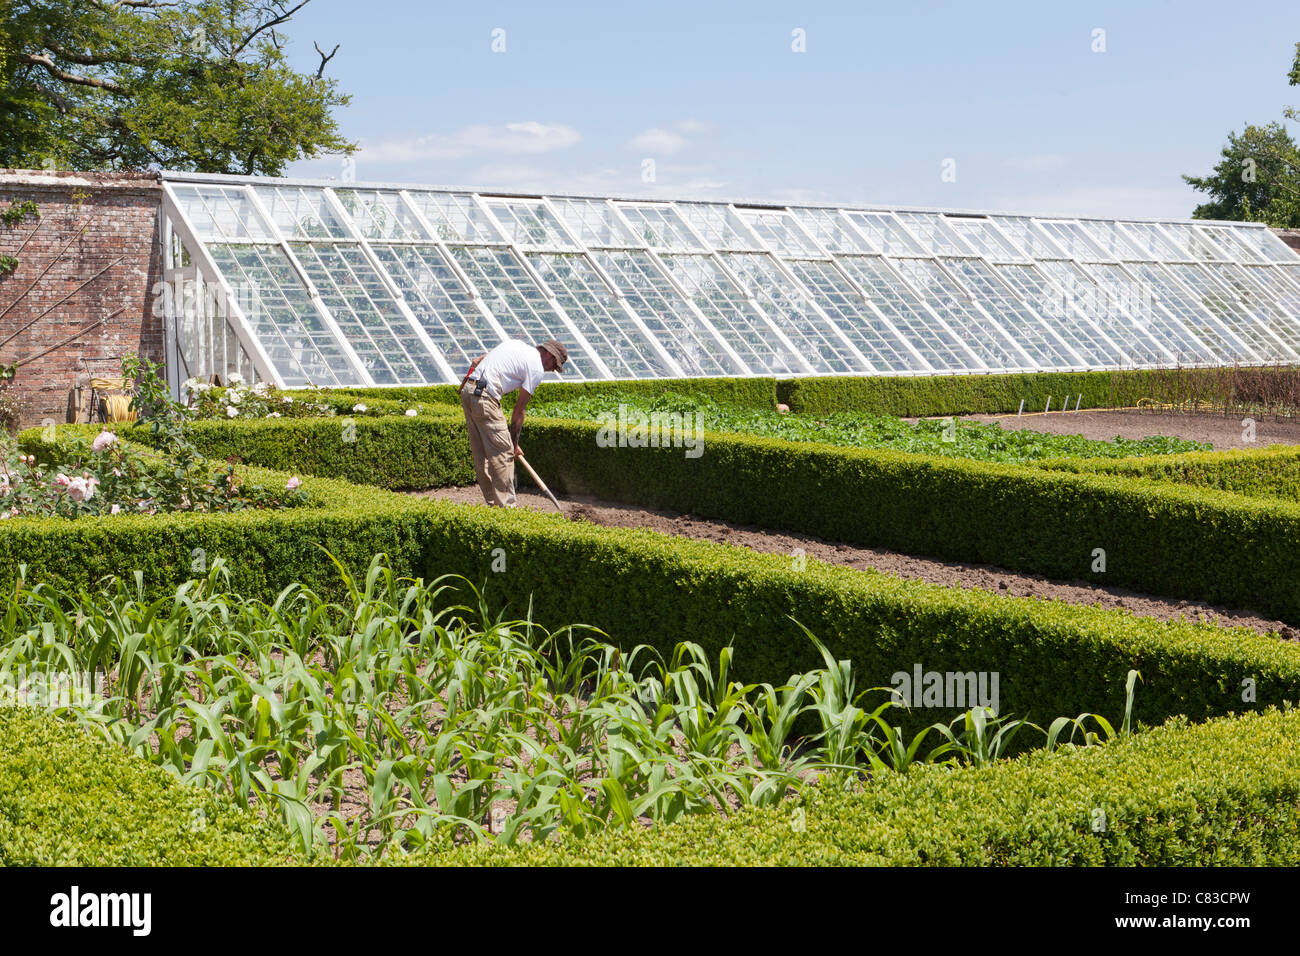 The kitchen garden and one of the restored greenhouses at The Lost Gardens of Heligan, Pentewan, St.Austell, Cornwall - Stock Image